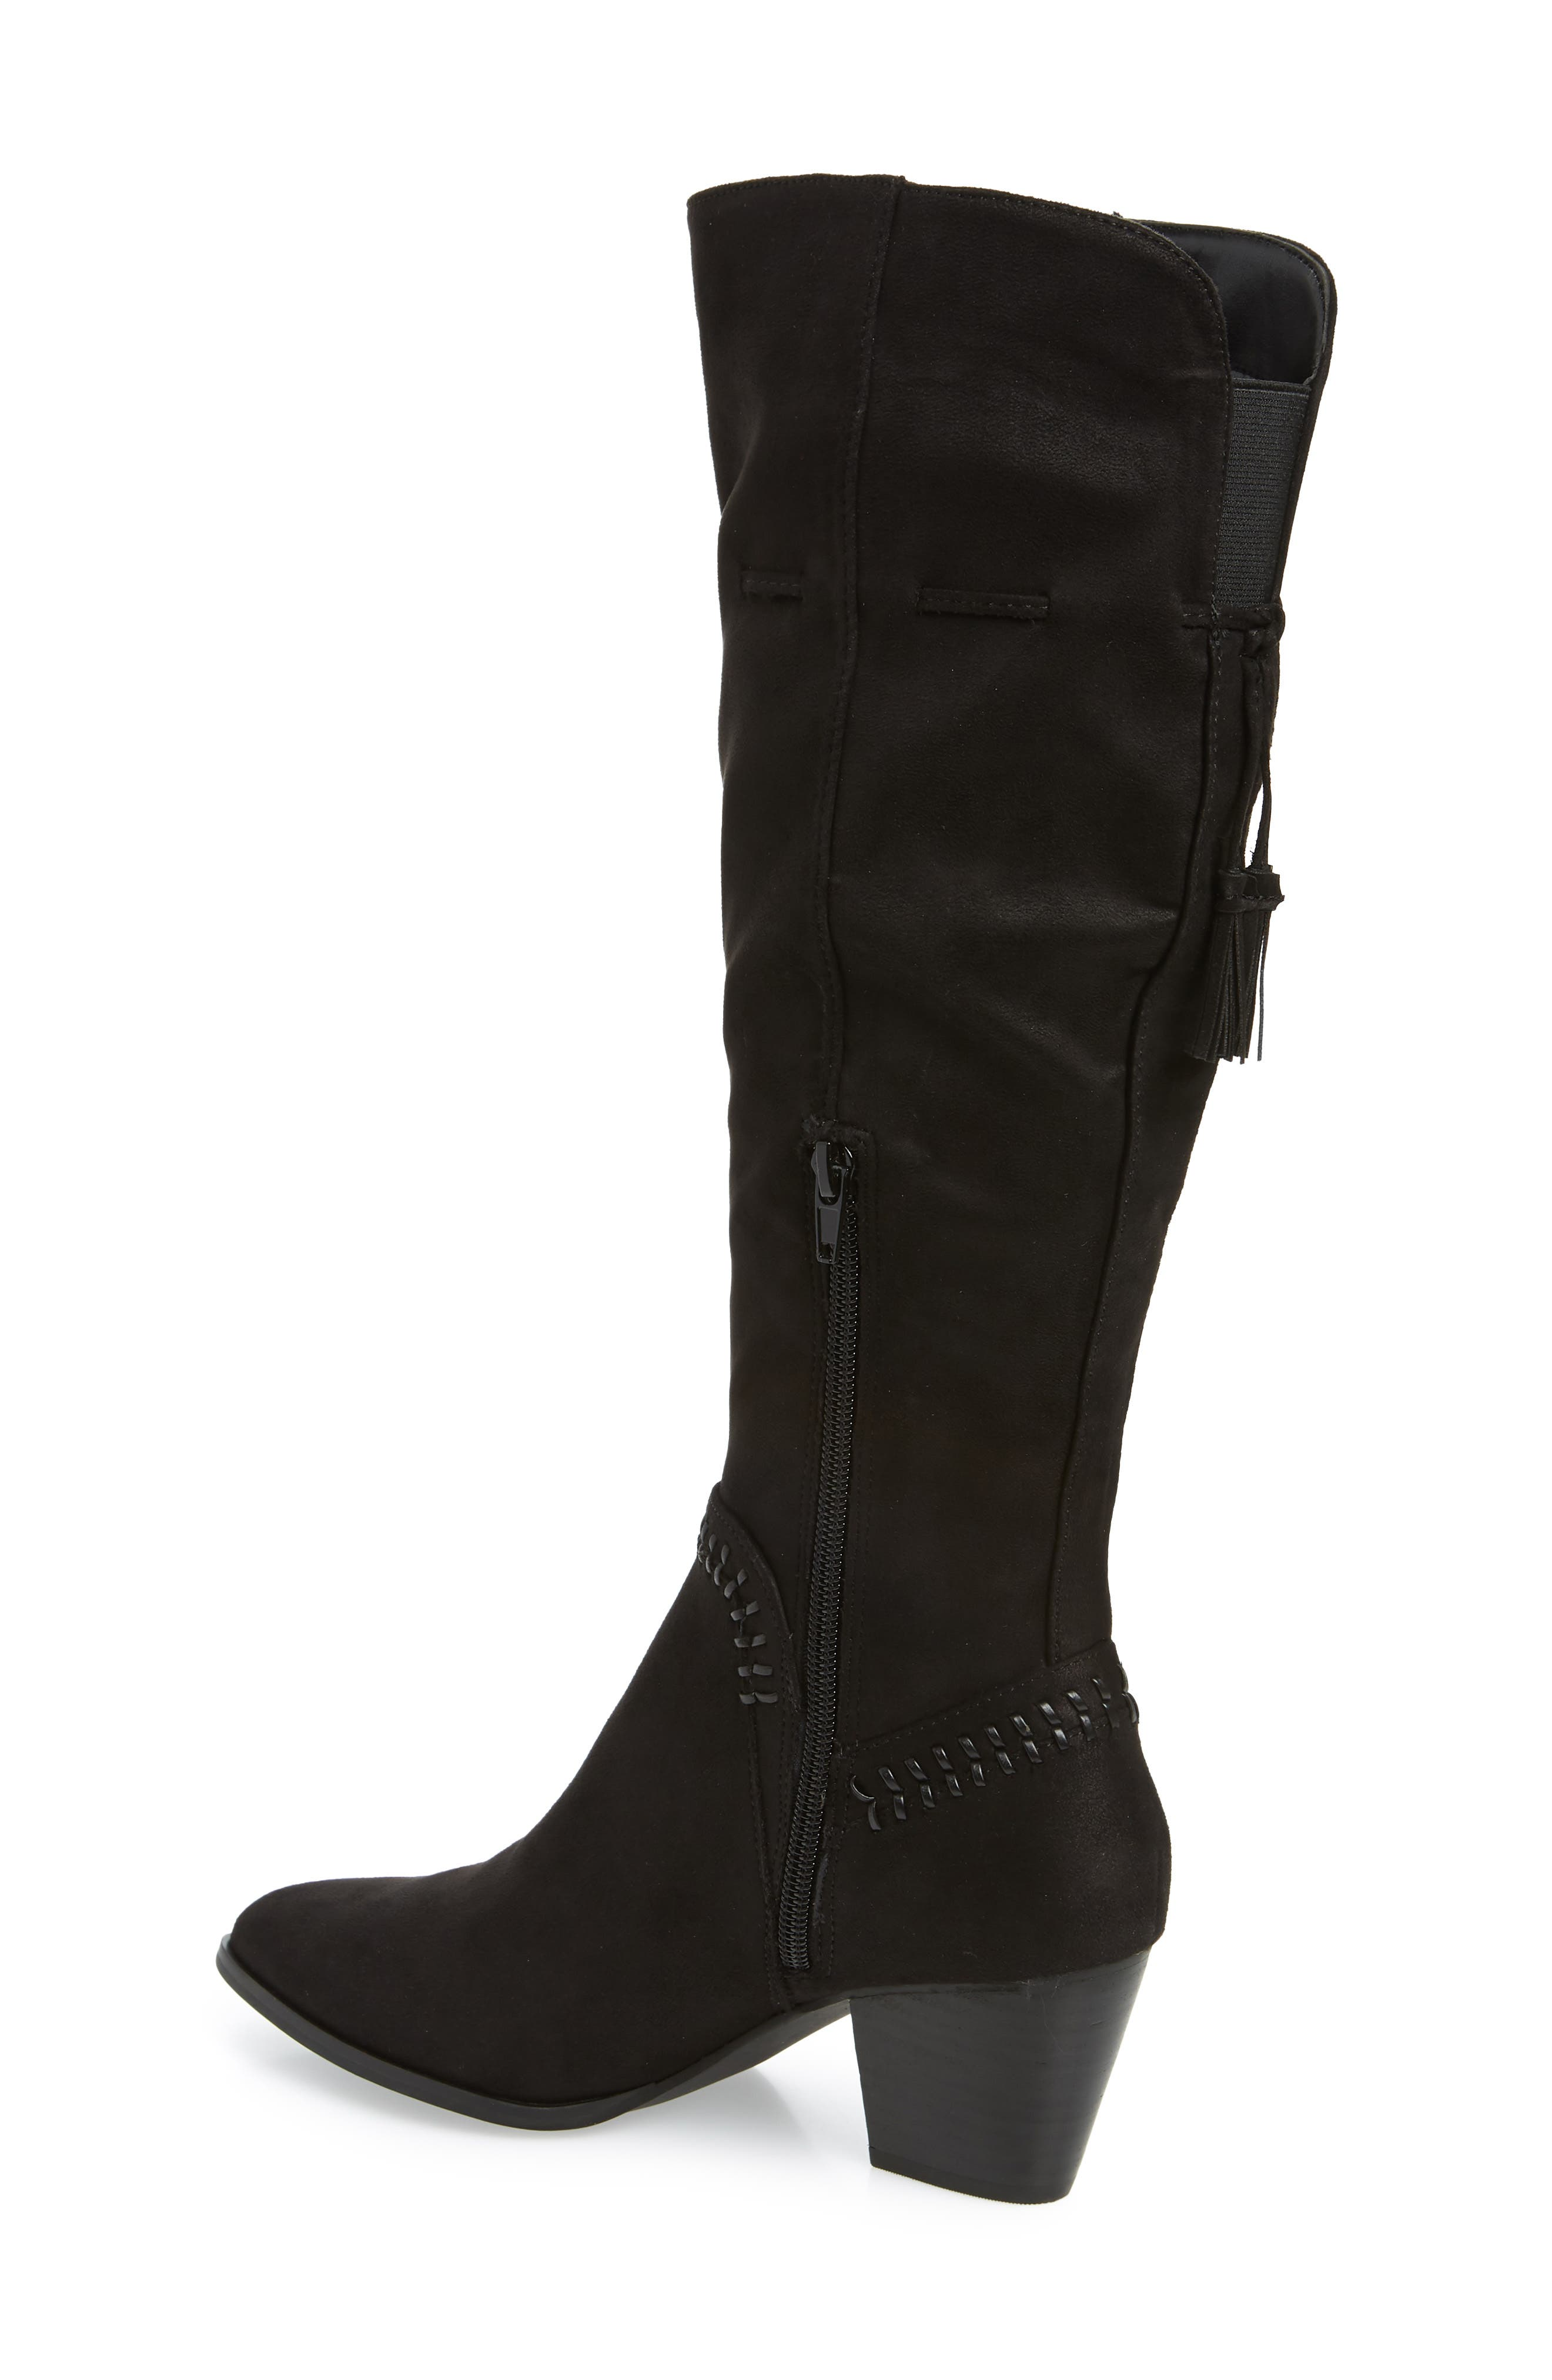 BELLA VITA, Eleanor II Knee High Boot, Alternate thumbnail 2, color, BLACK